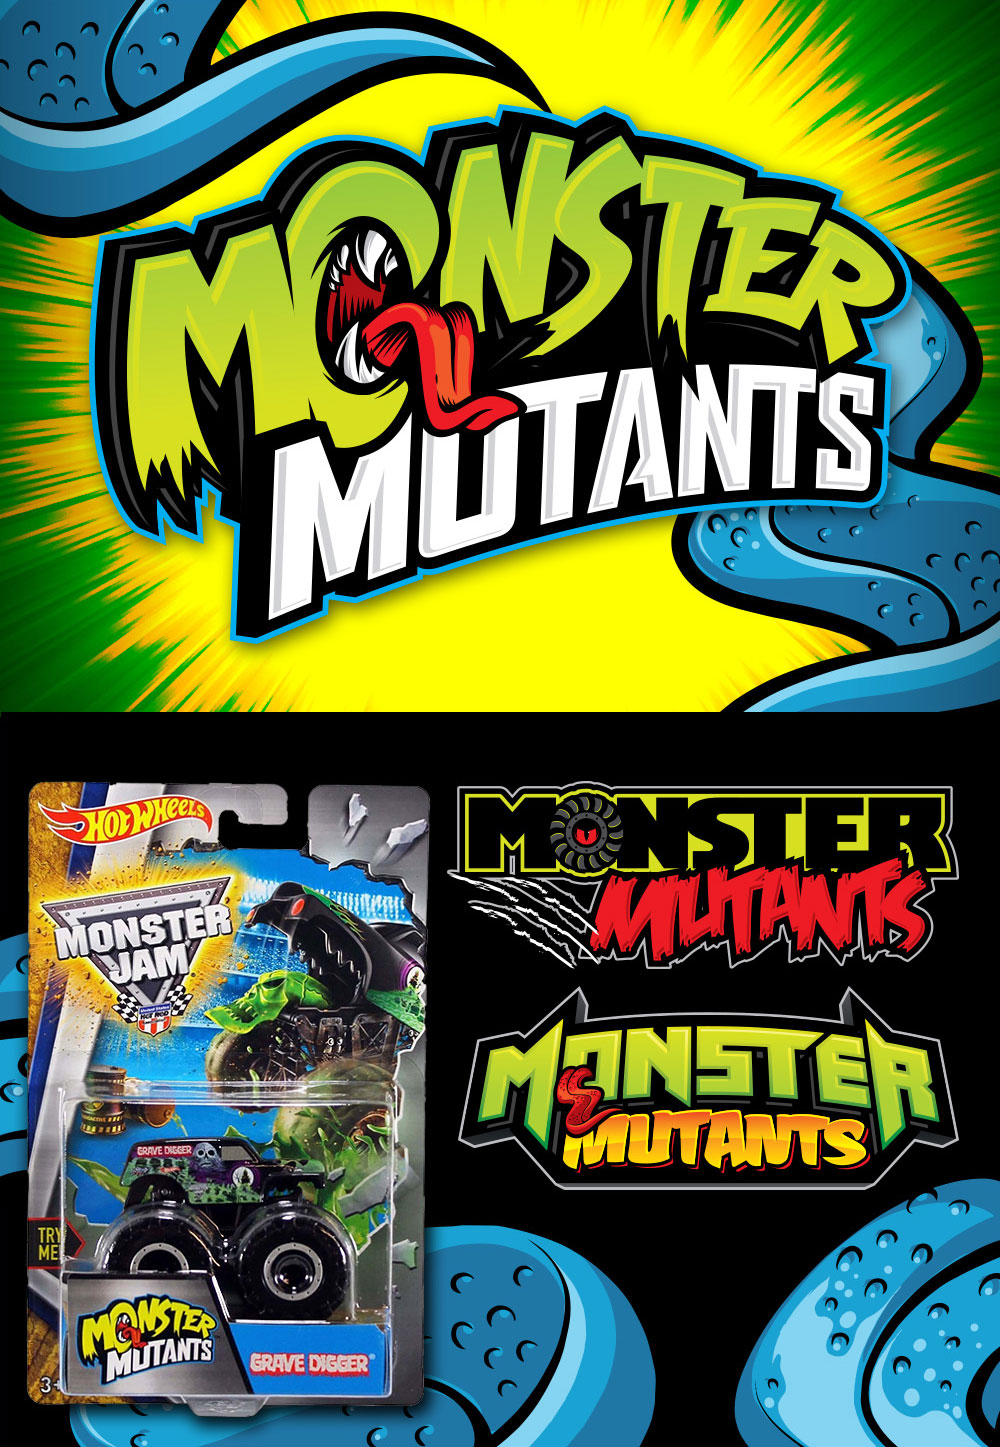 Monster_Mutants.jpg